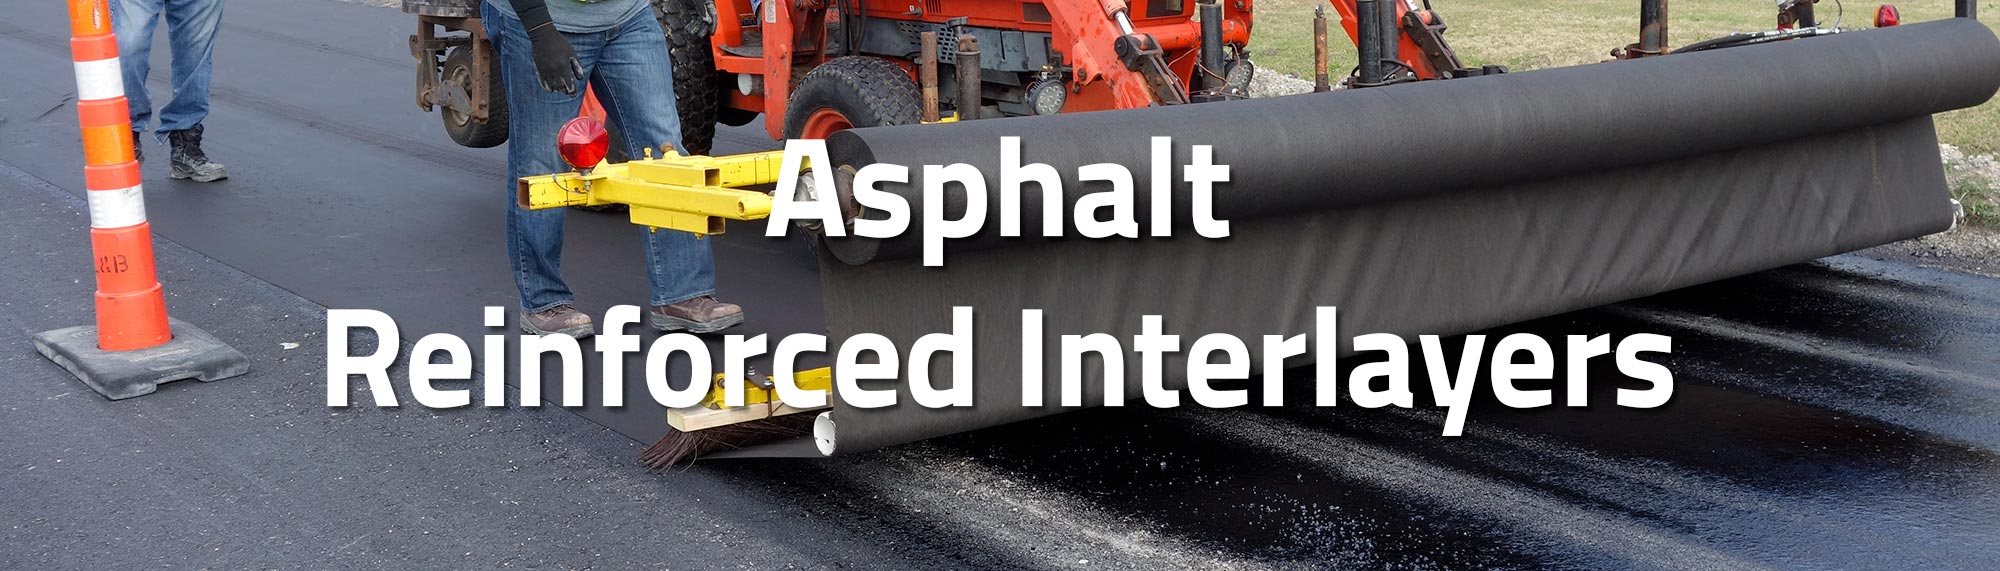 Asphalt Reinforced Interlayers